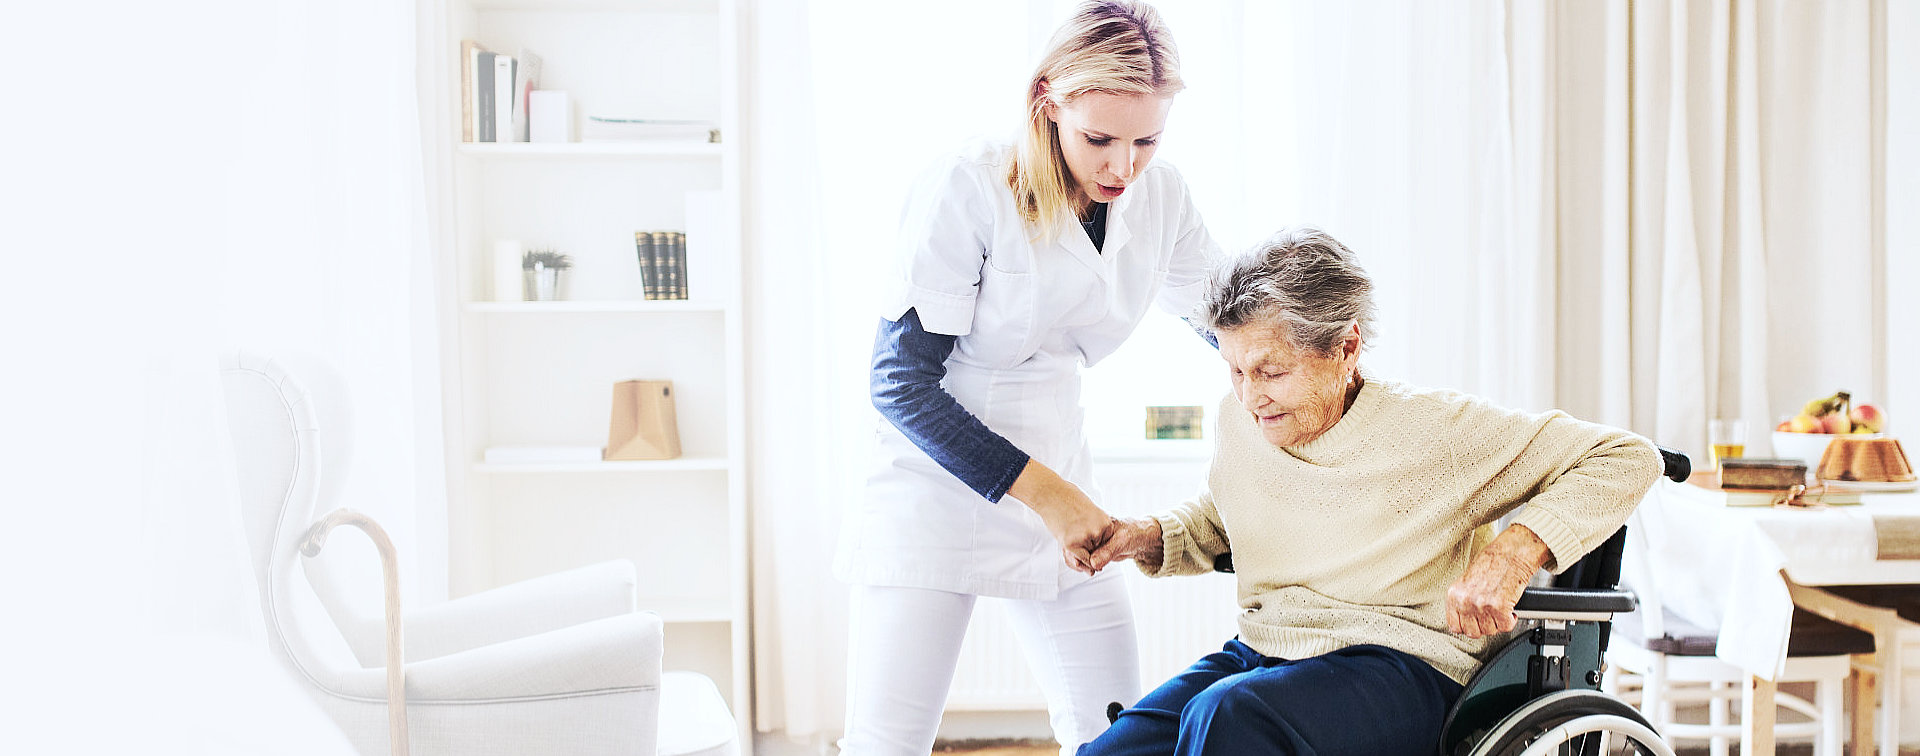 caregiver assisting senior woman in wheelchair